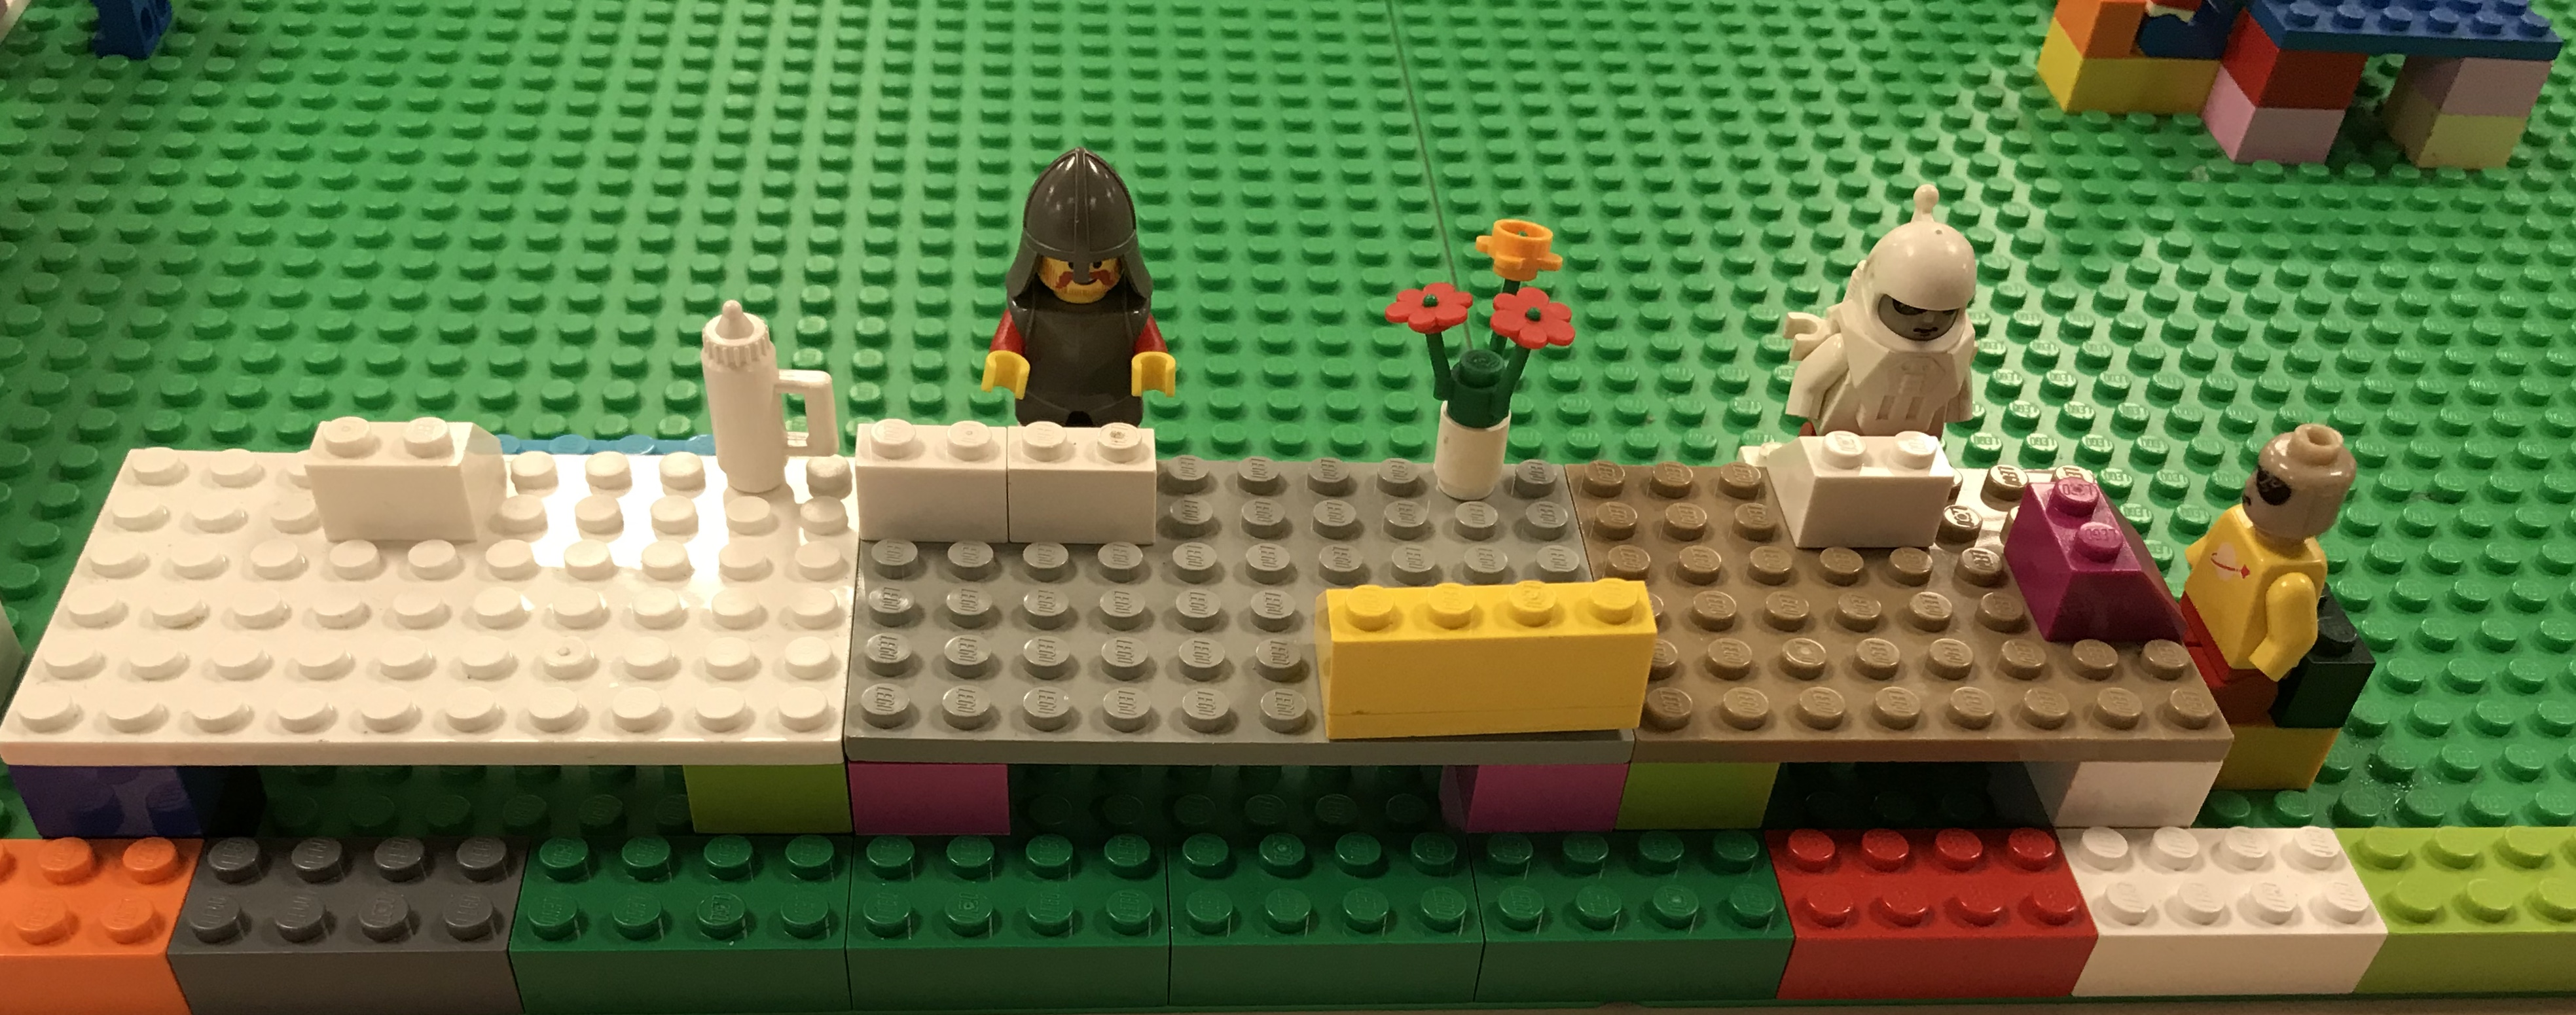 Computer terminals in the Lego library (Halton Libraries)